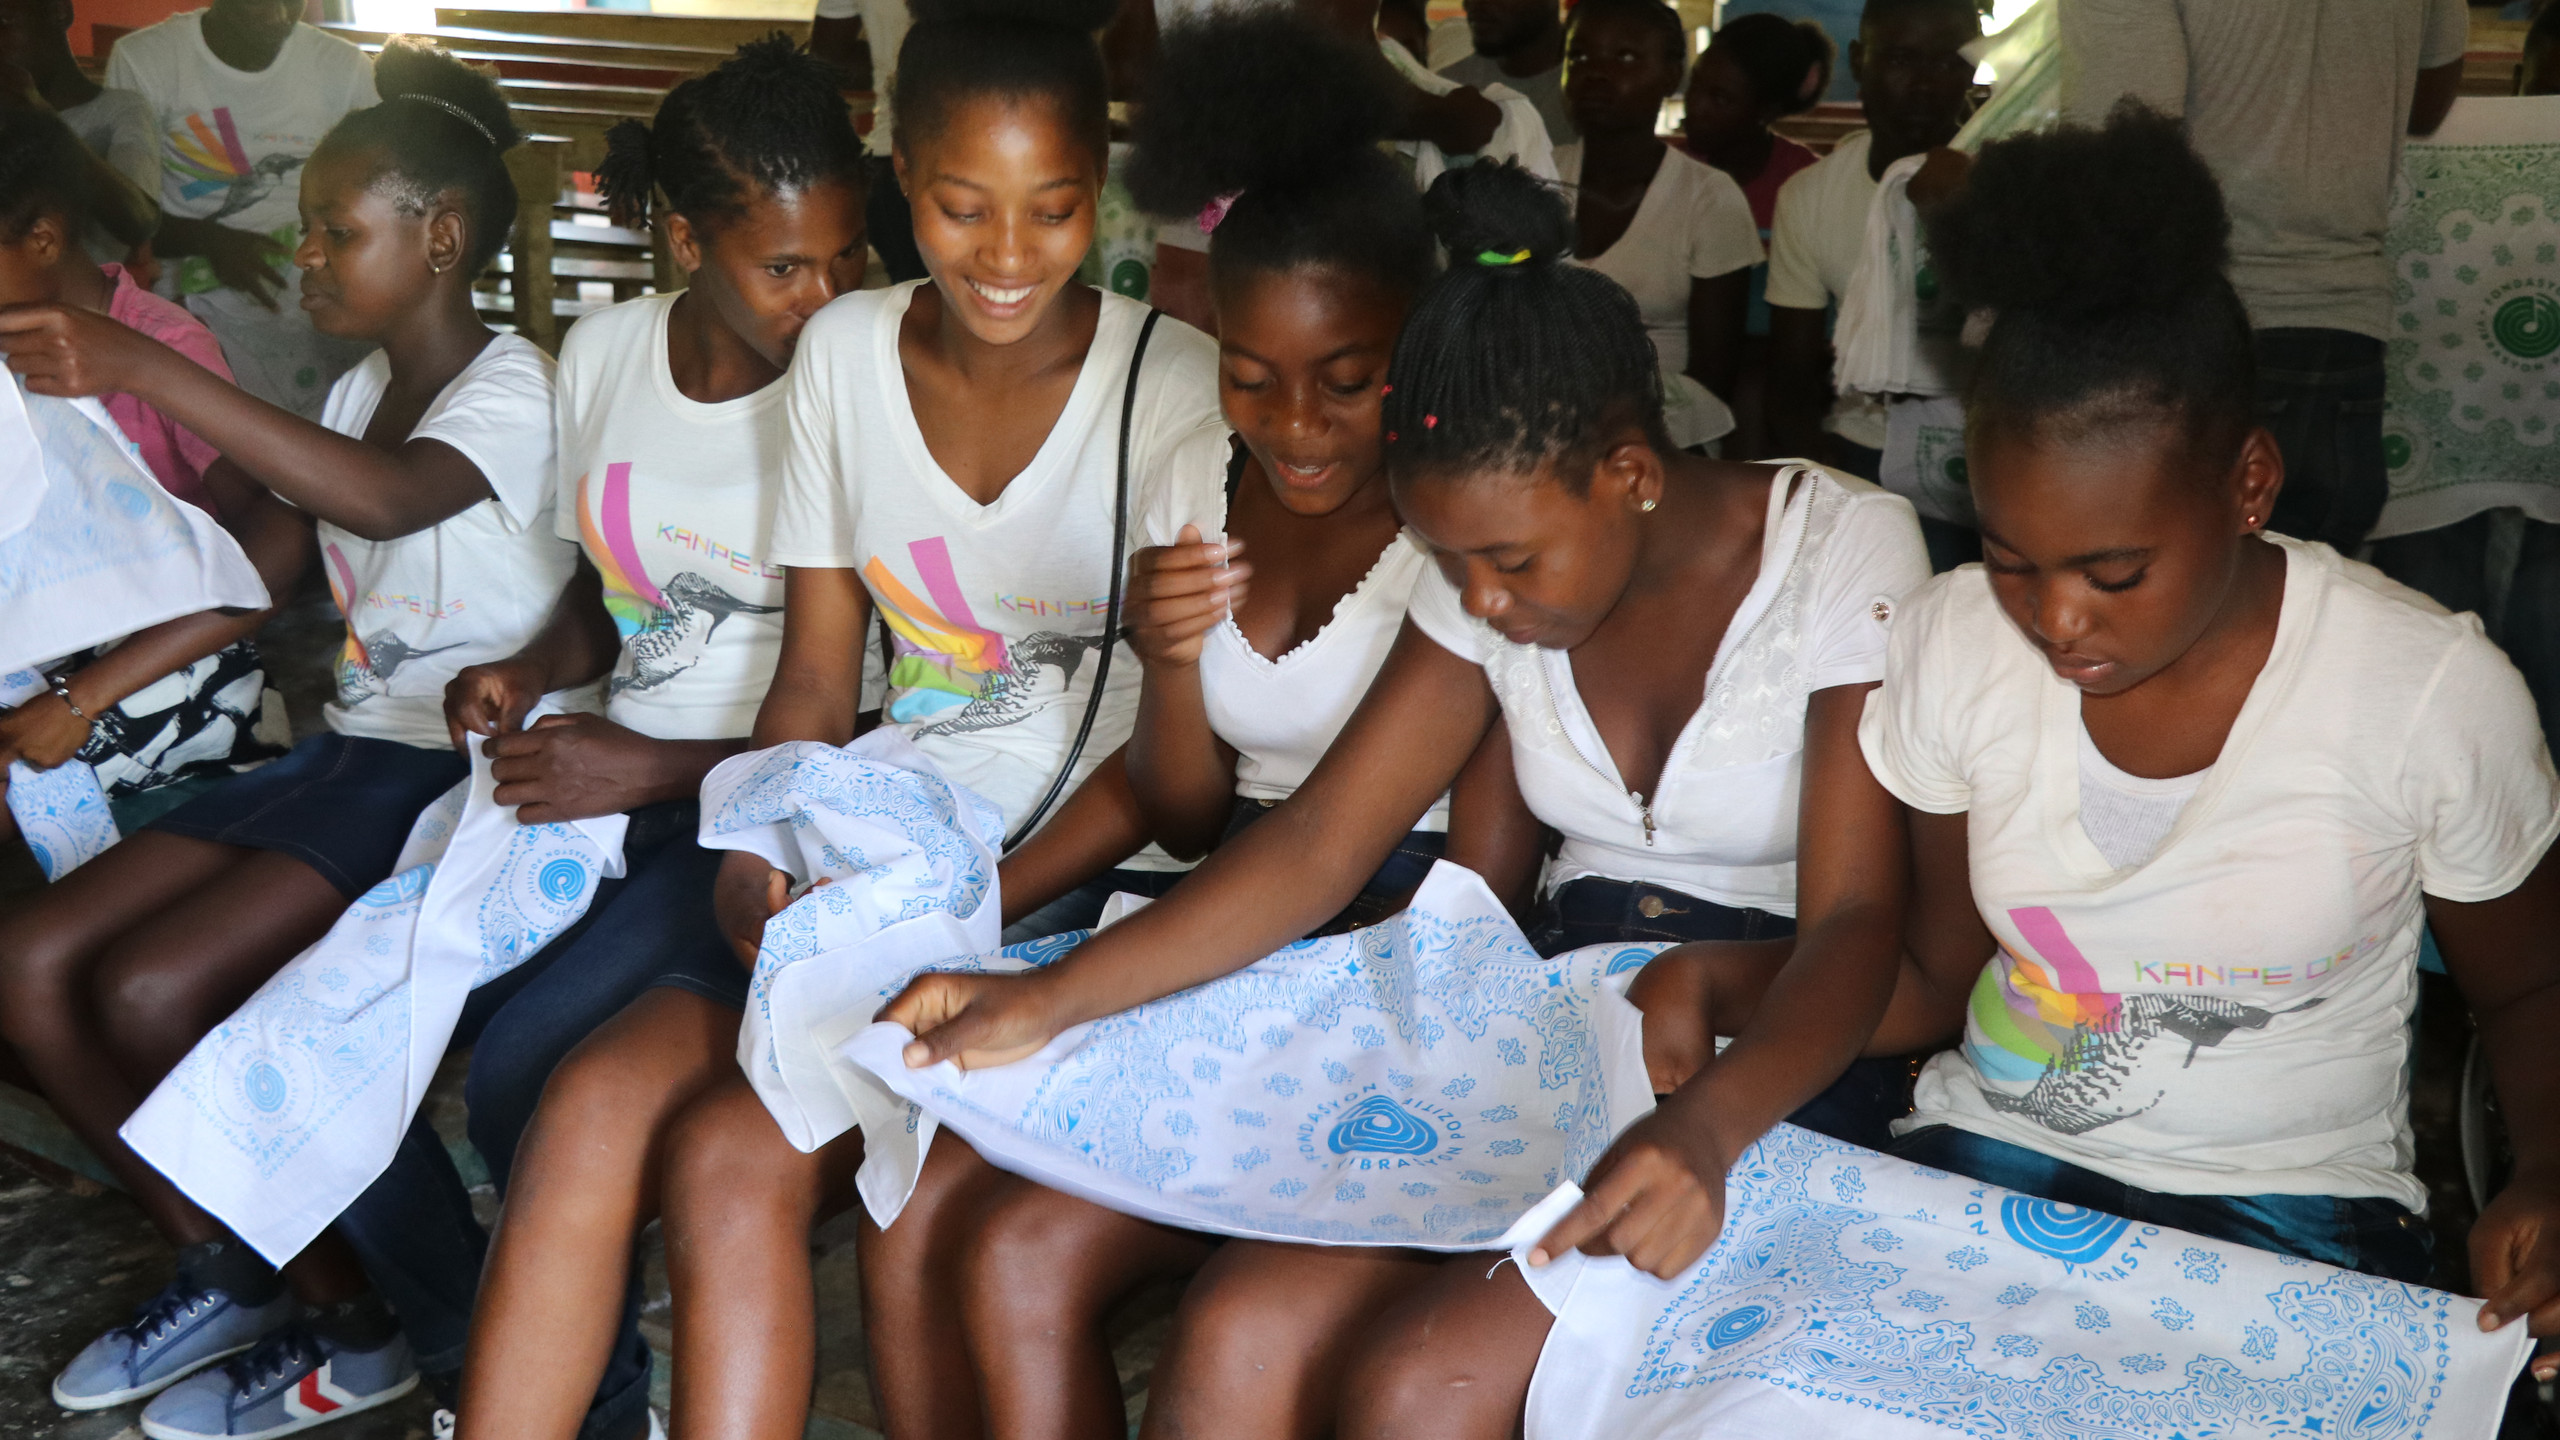 Haitian Youth Music Relief